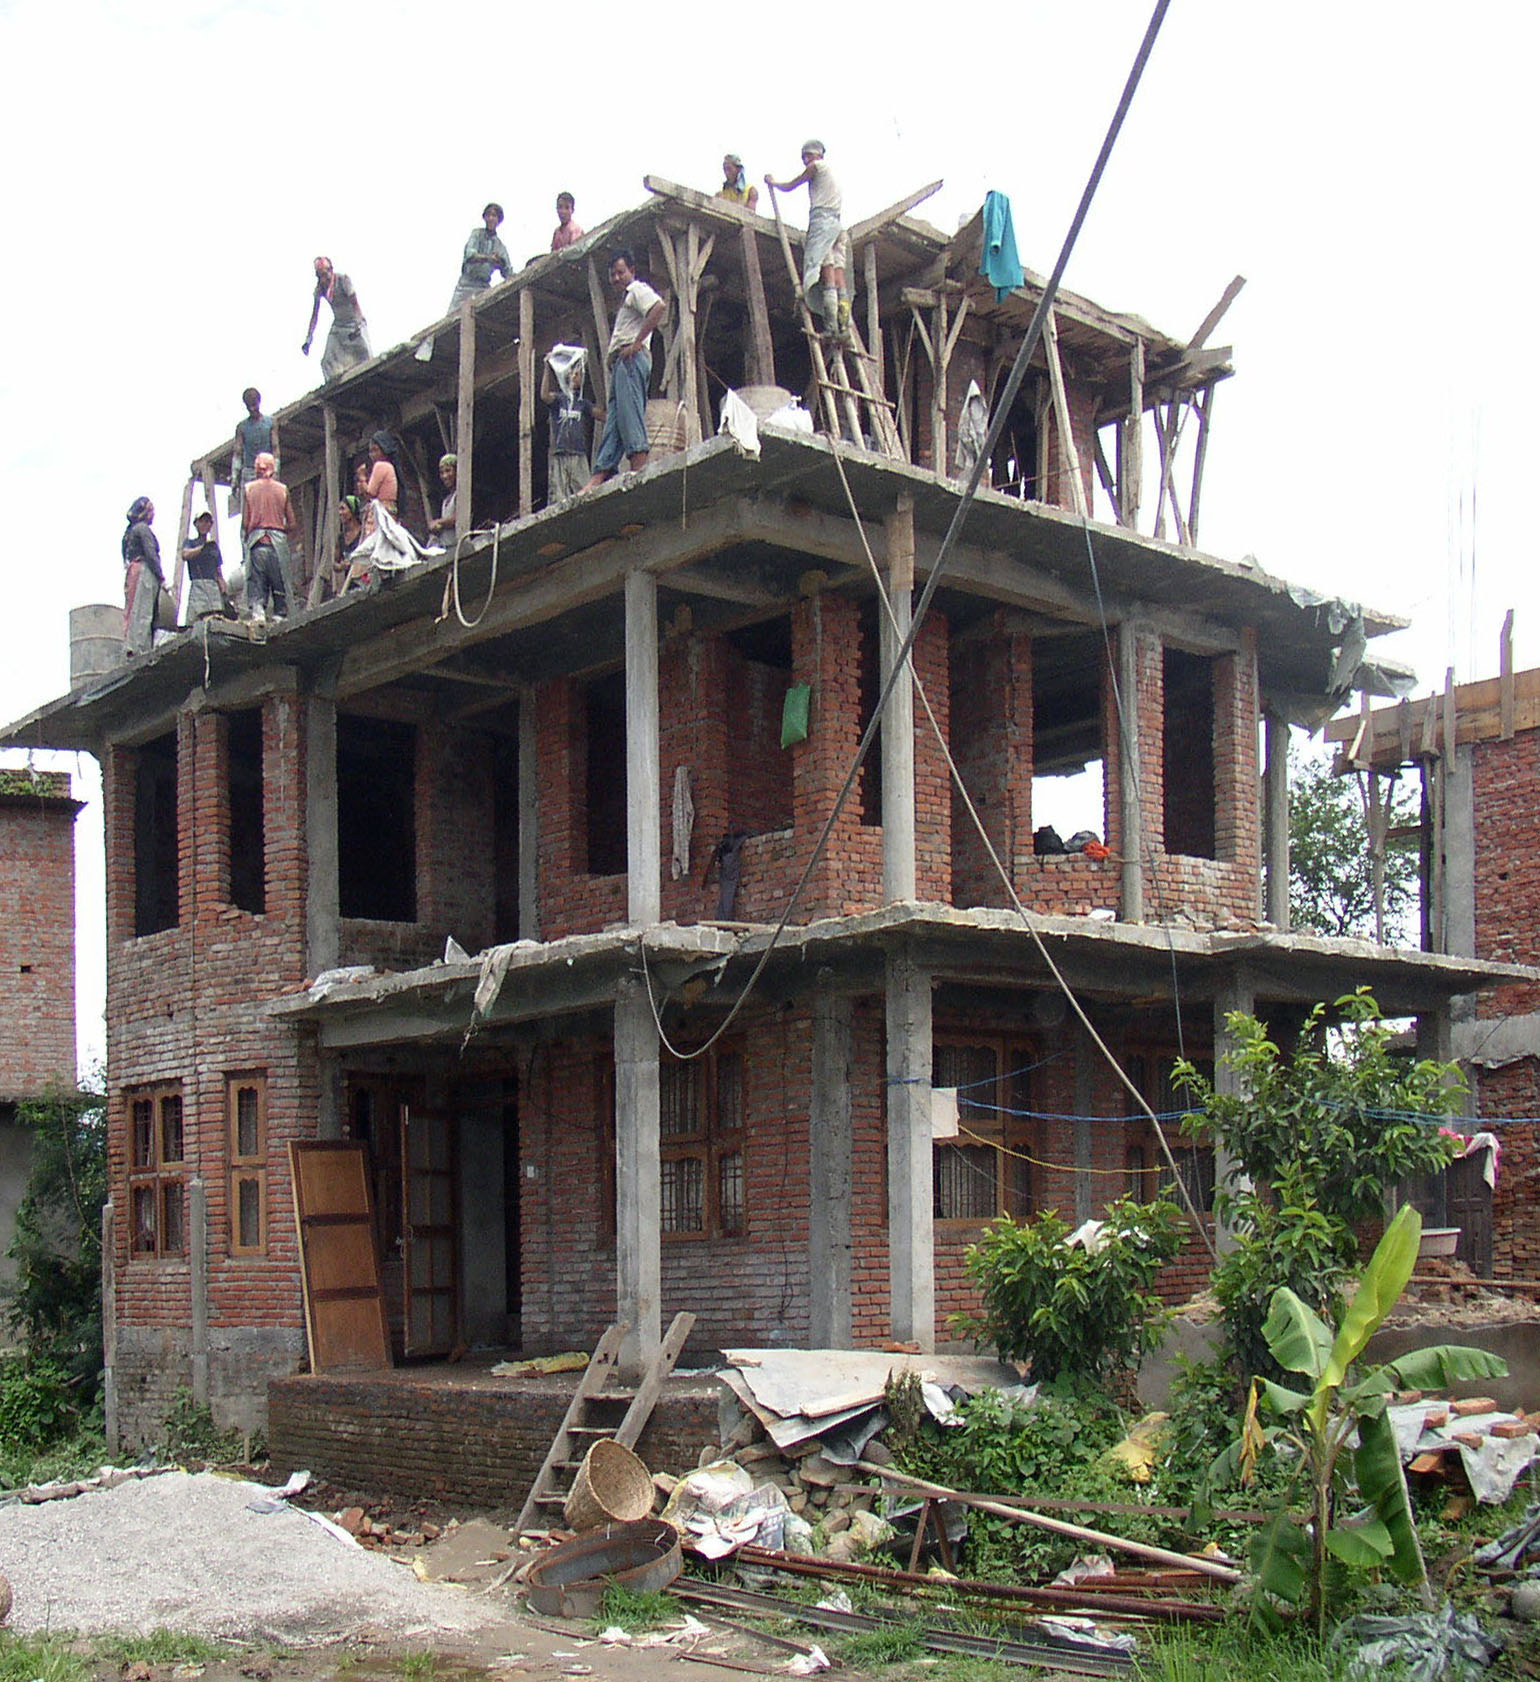 http://upload.wikimedia.org/wikipedia/commons/9/98/Building_a_house_nearby_the_street_between_Kathmandu_and-Nagarkot.jpg